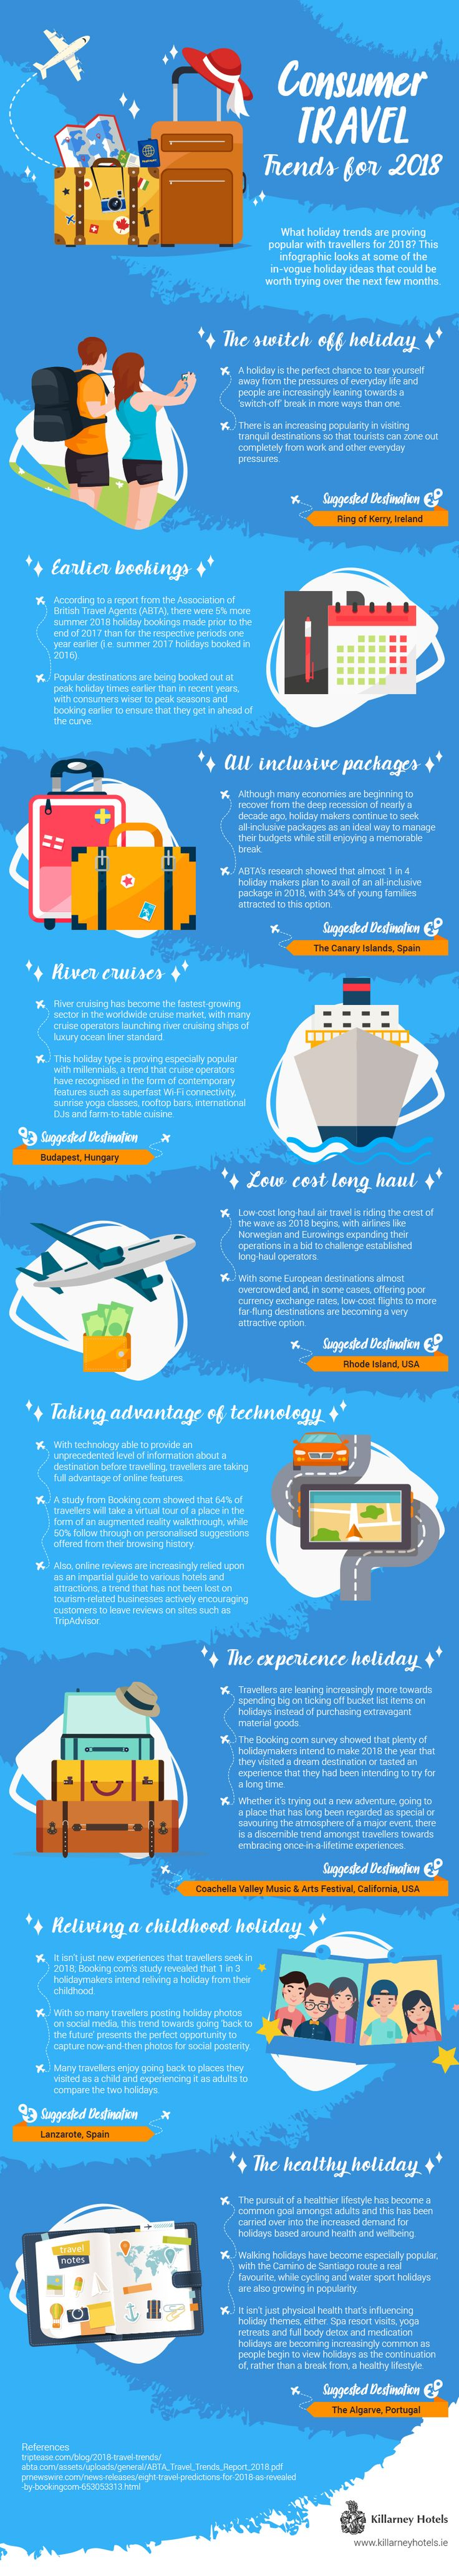 This infographic identifies some of the standout trends in the travel market for 2018.